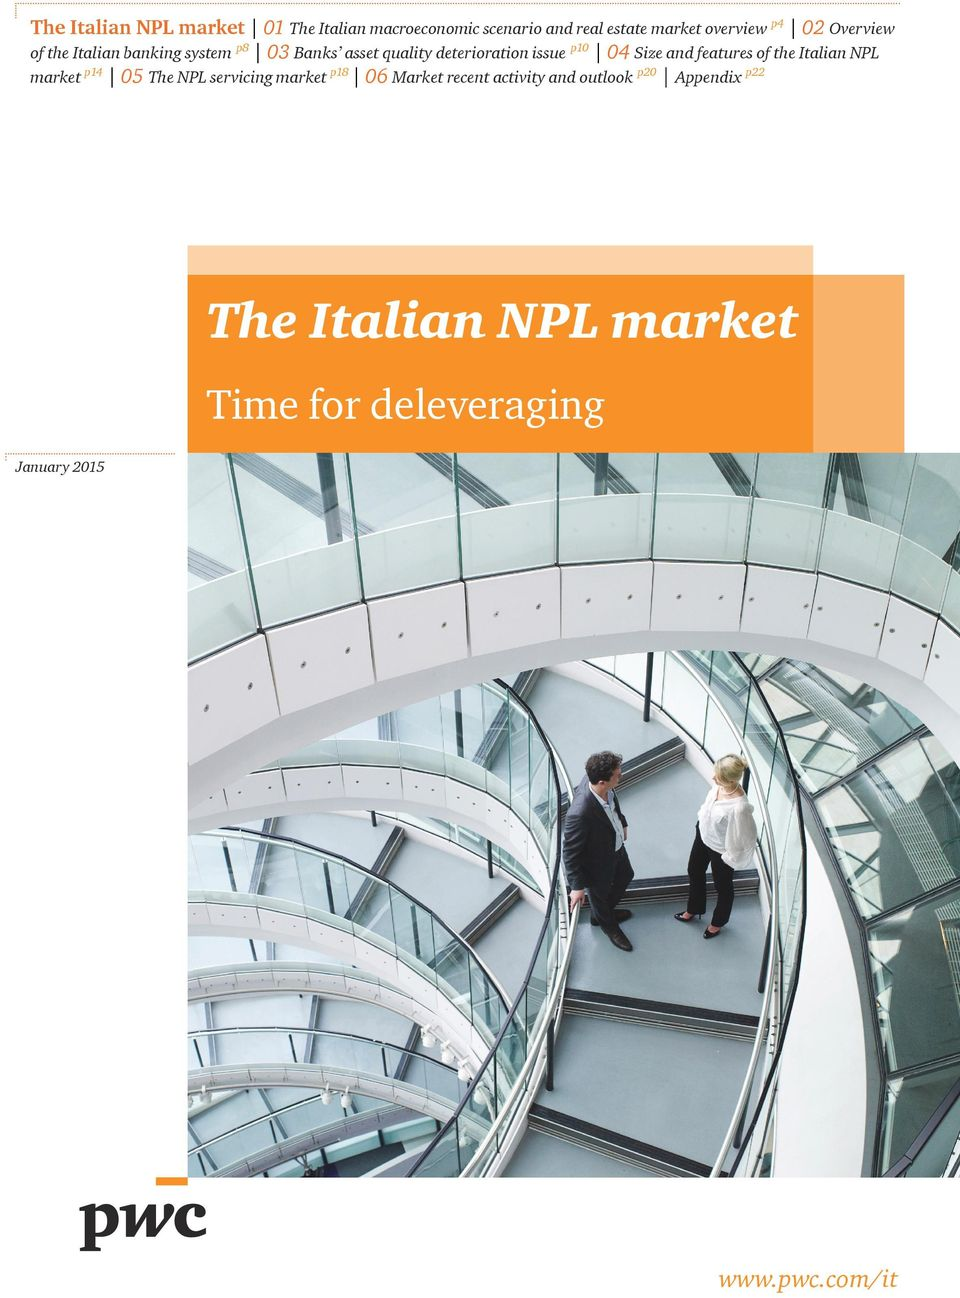 and features of the Italian NPL market p14 05 The NPL servicing market p18 06 Market recent